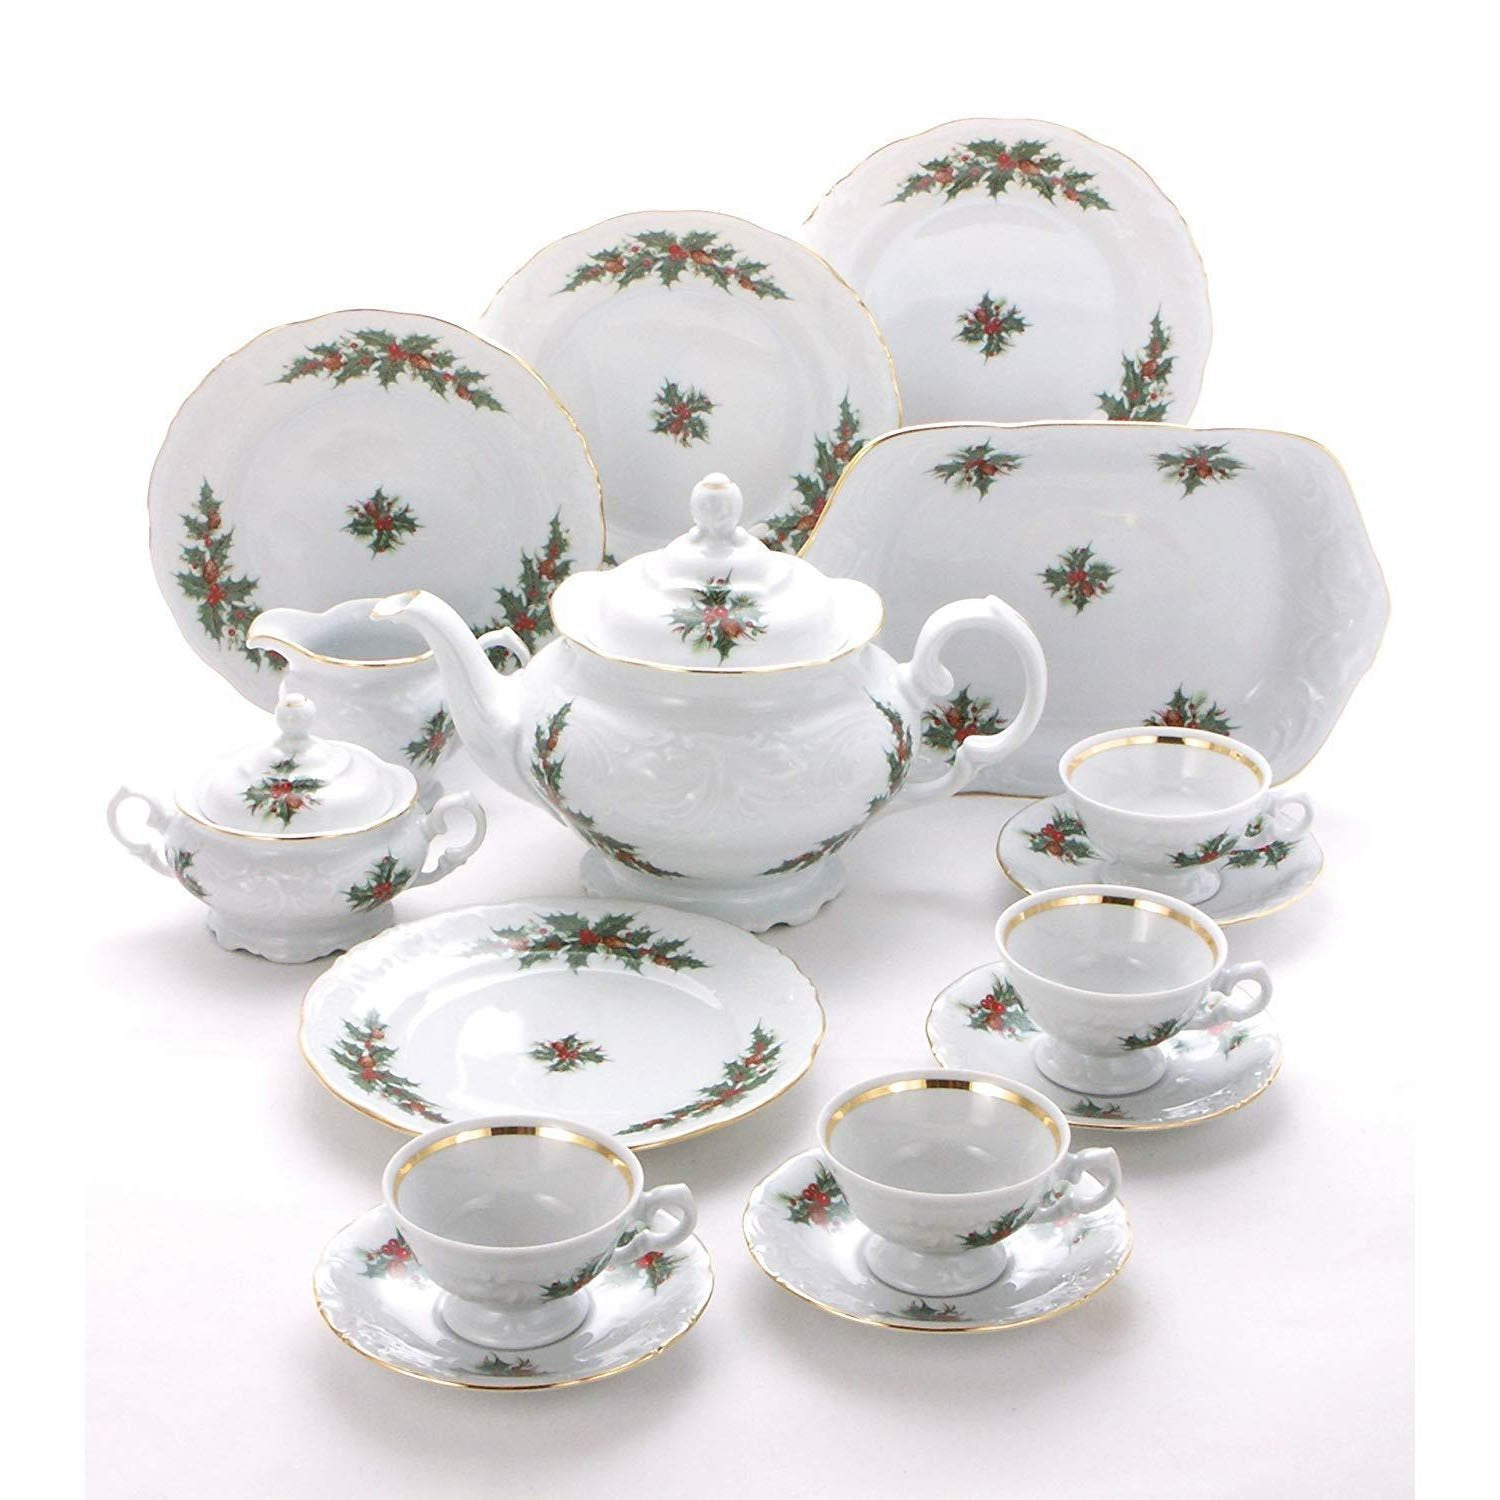 New Porcelain Tea Set for Children